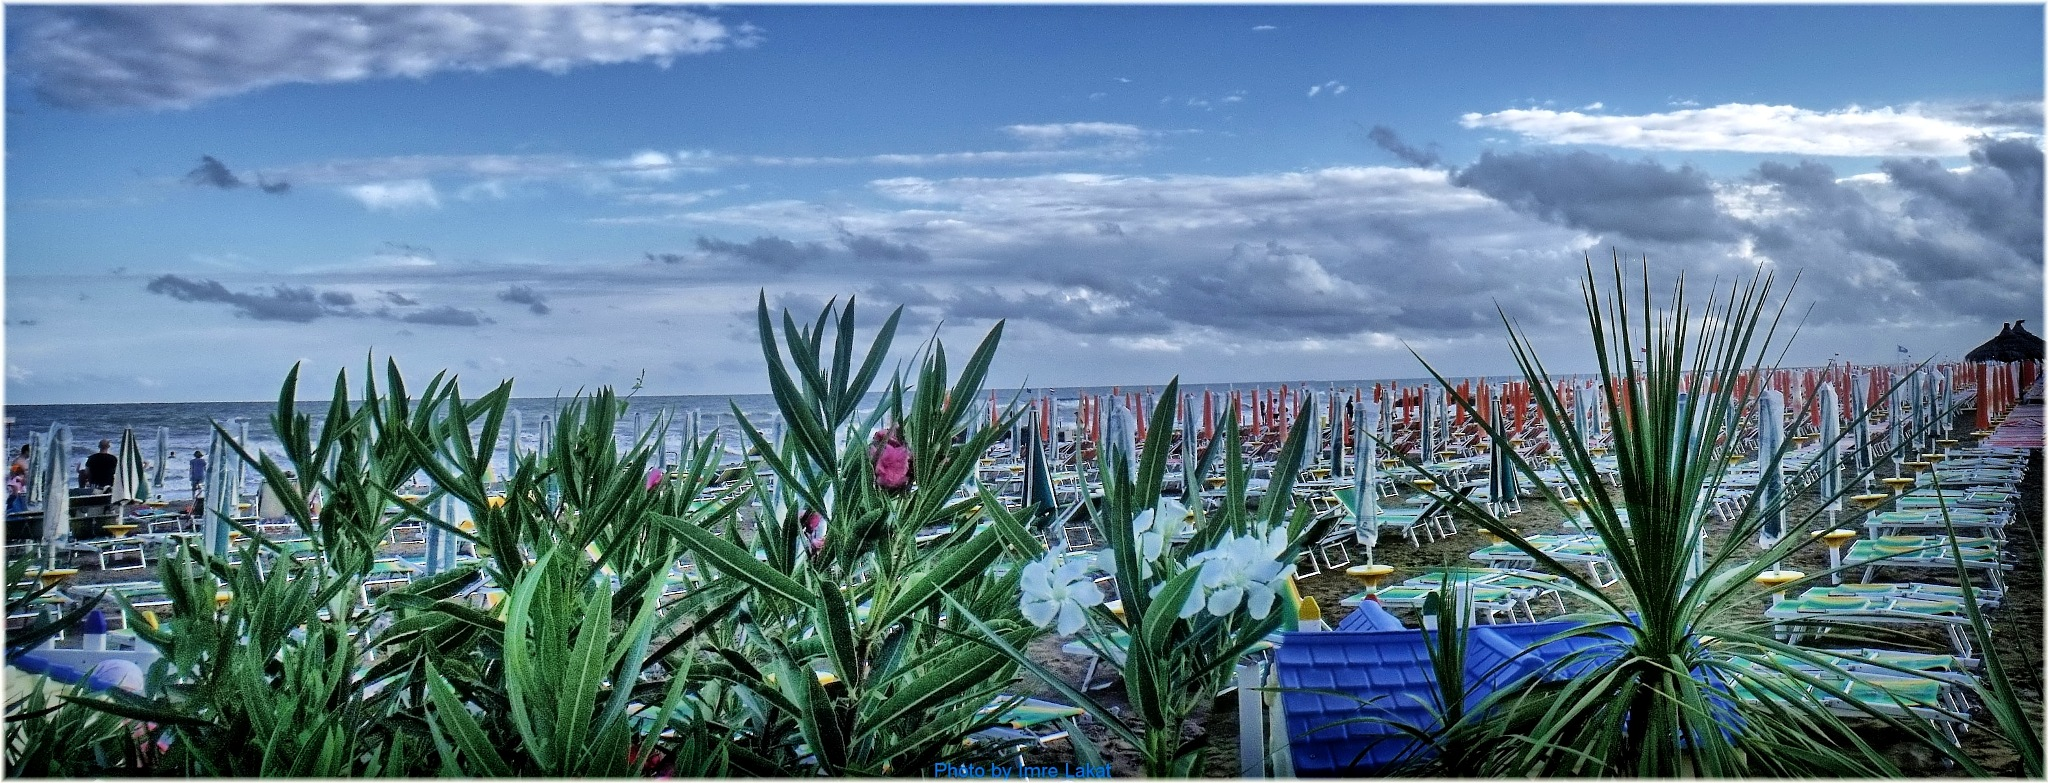 Beach in Caorle by Imre Lakat